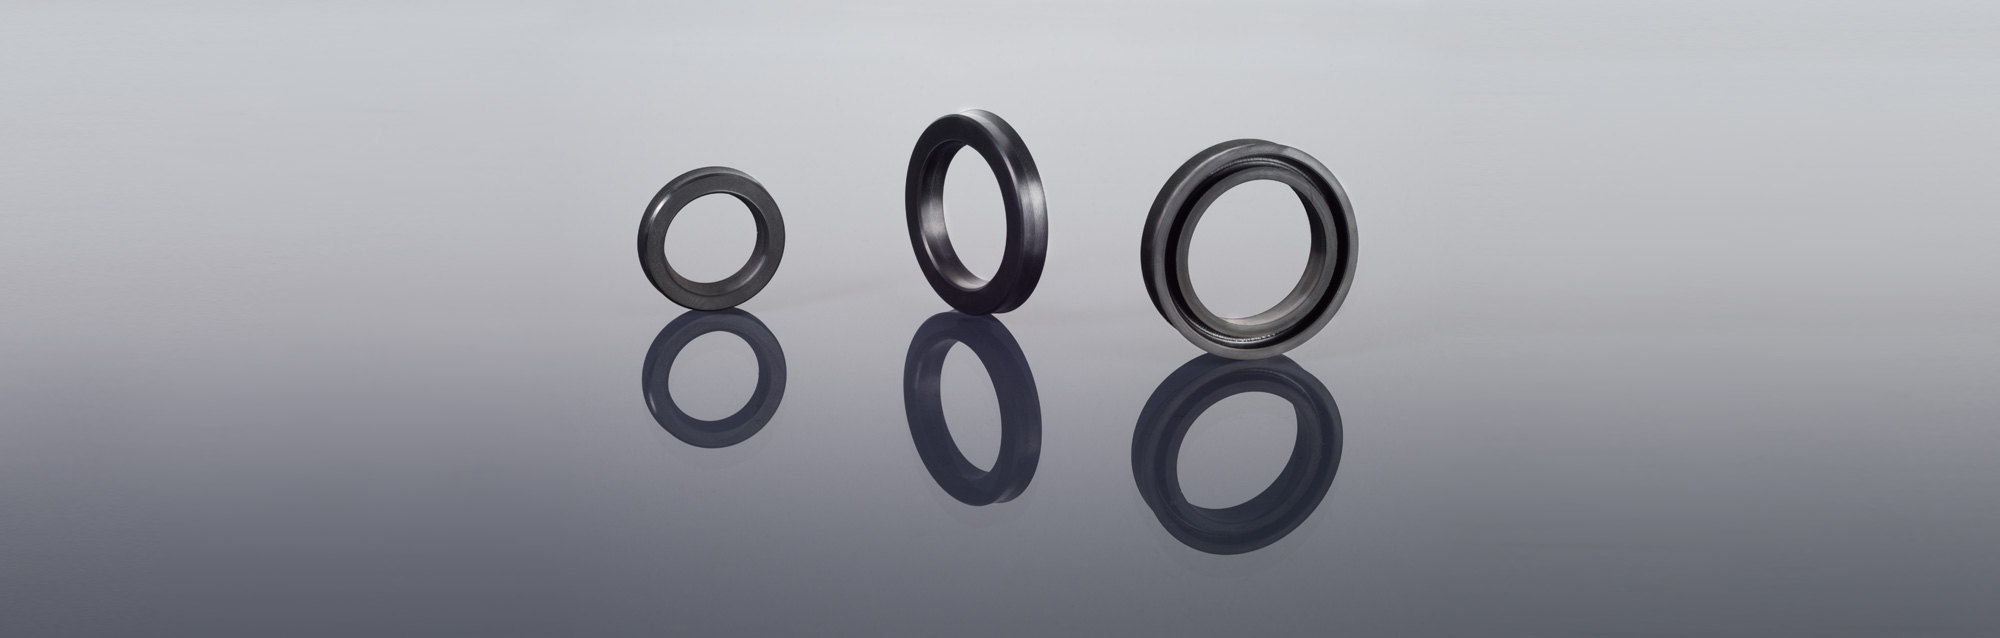 Rubber Elastomers Seals O Rings Aft Fluorotec